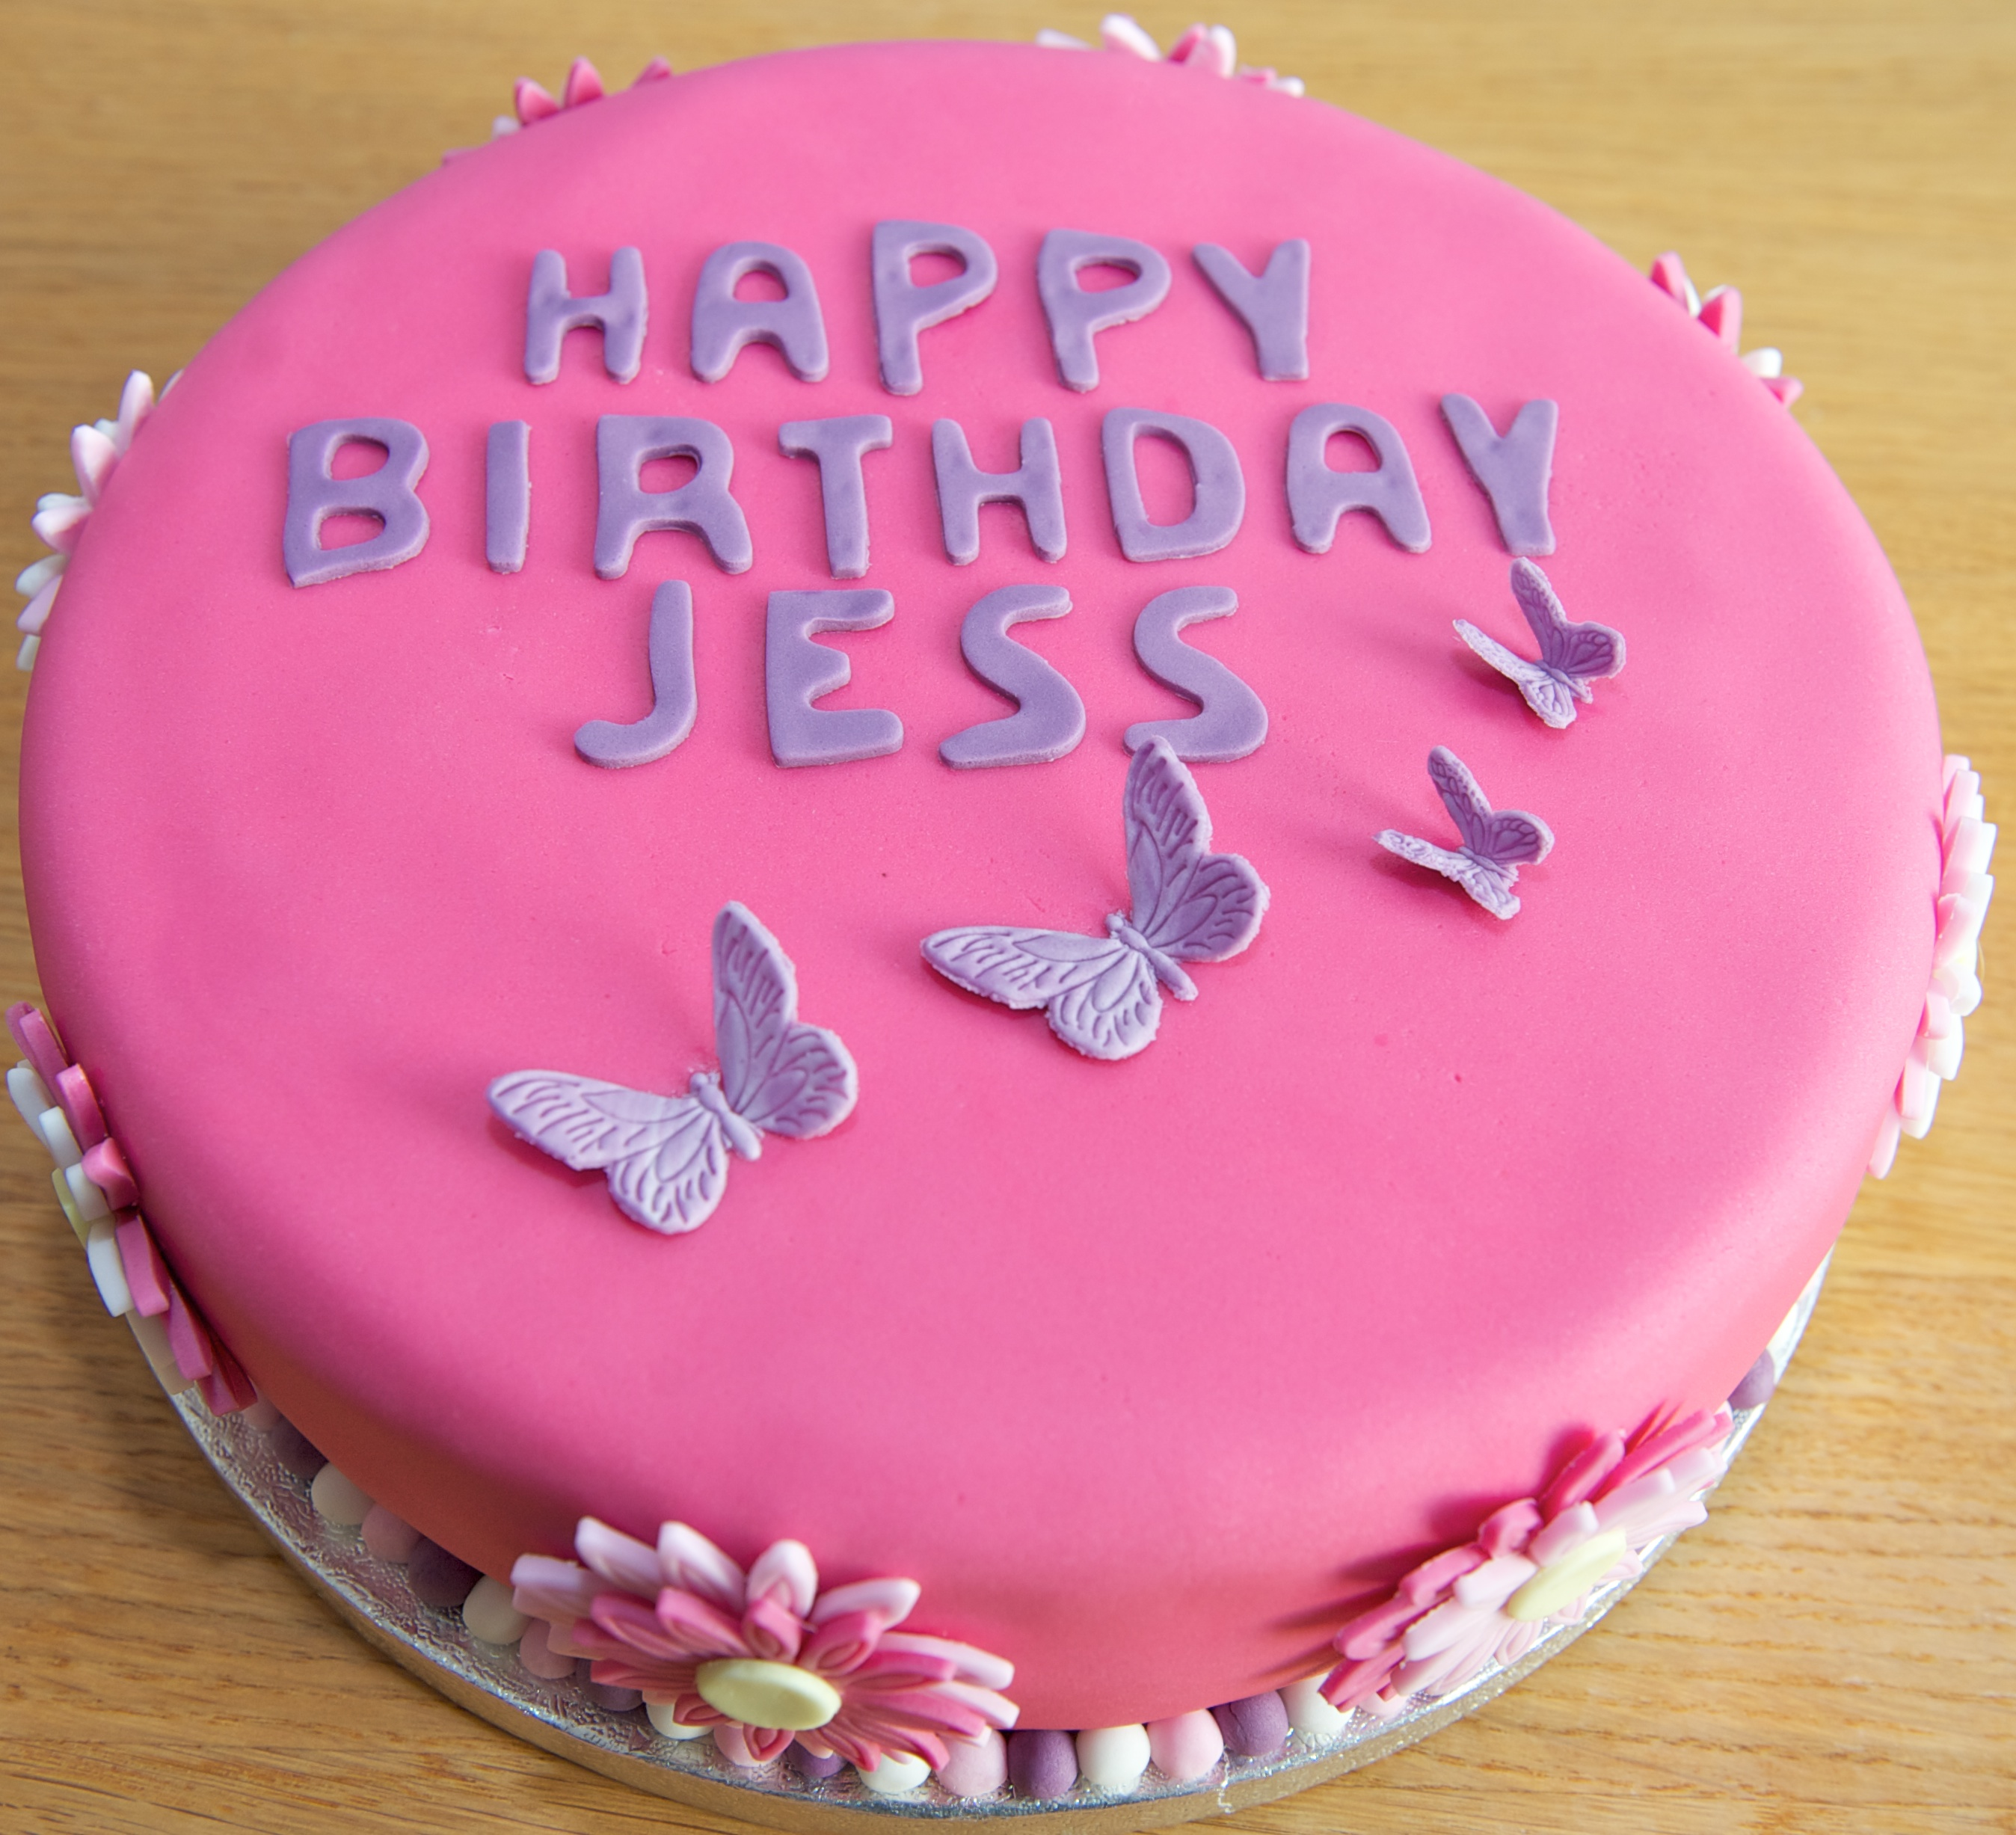 Awesome 10 Yessica Birthday Cakes Photo Happy Birthday Jessica Cake Funny Birthday Cards Online Alyptdamsfinfo